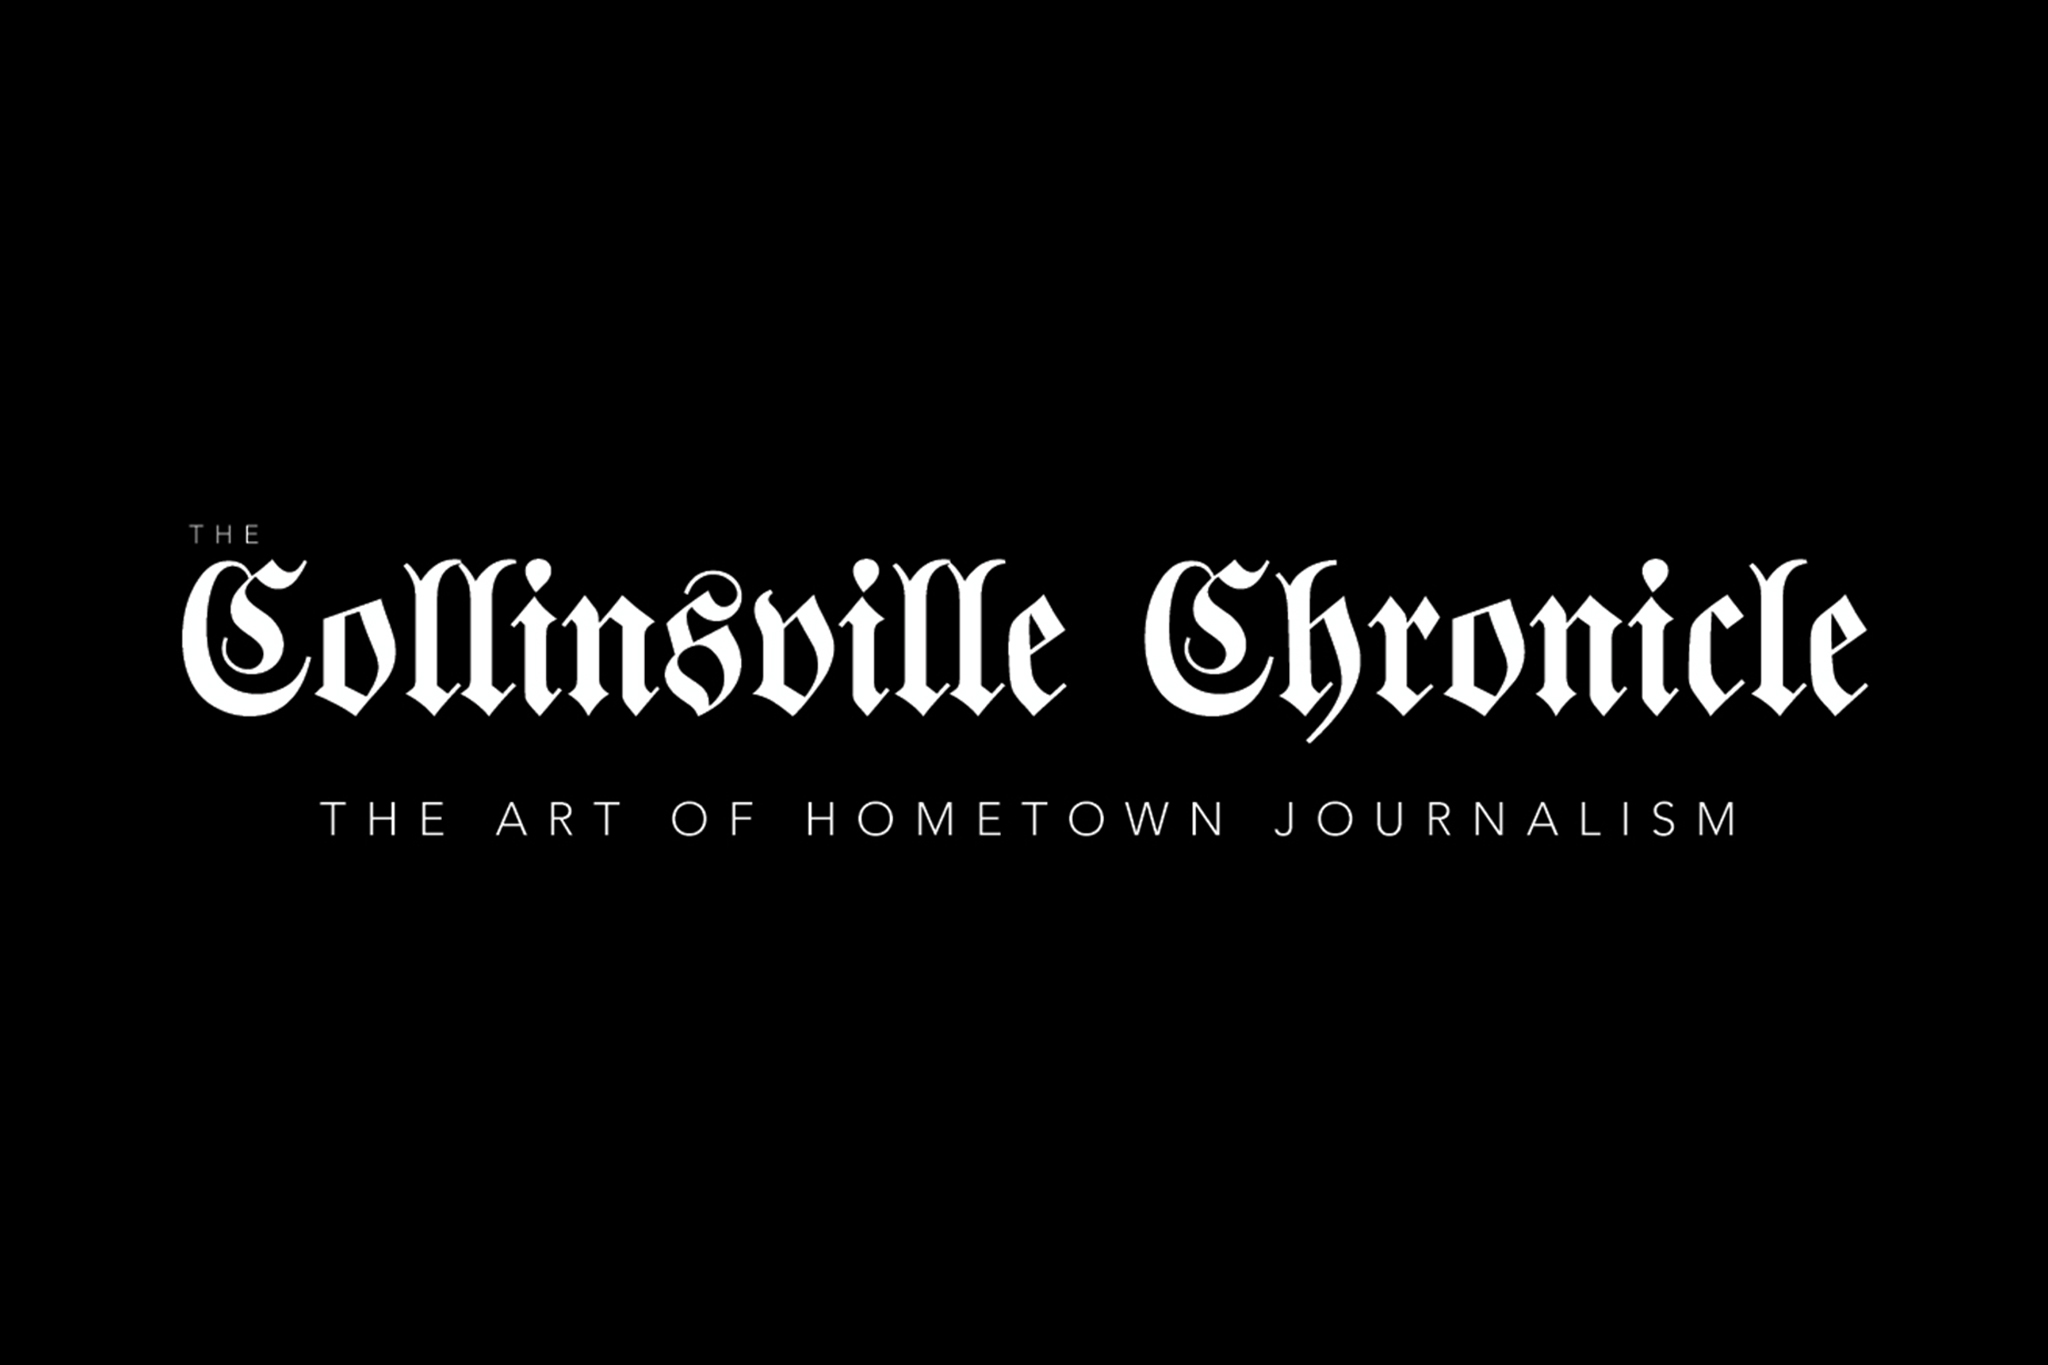 The Collinsville Chronicle